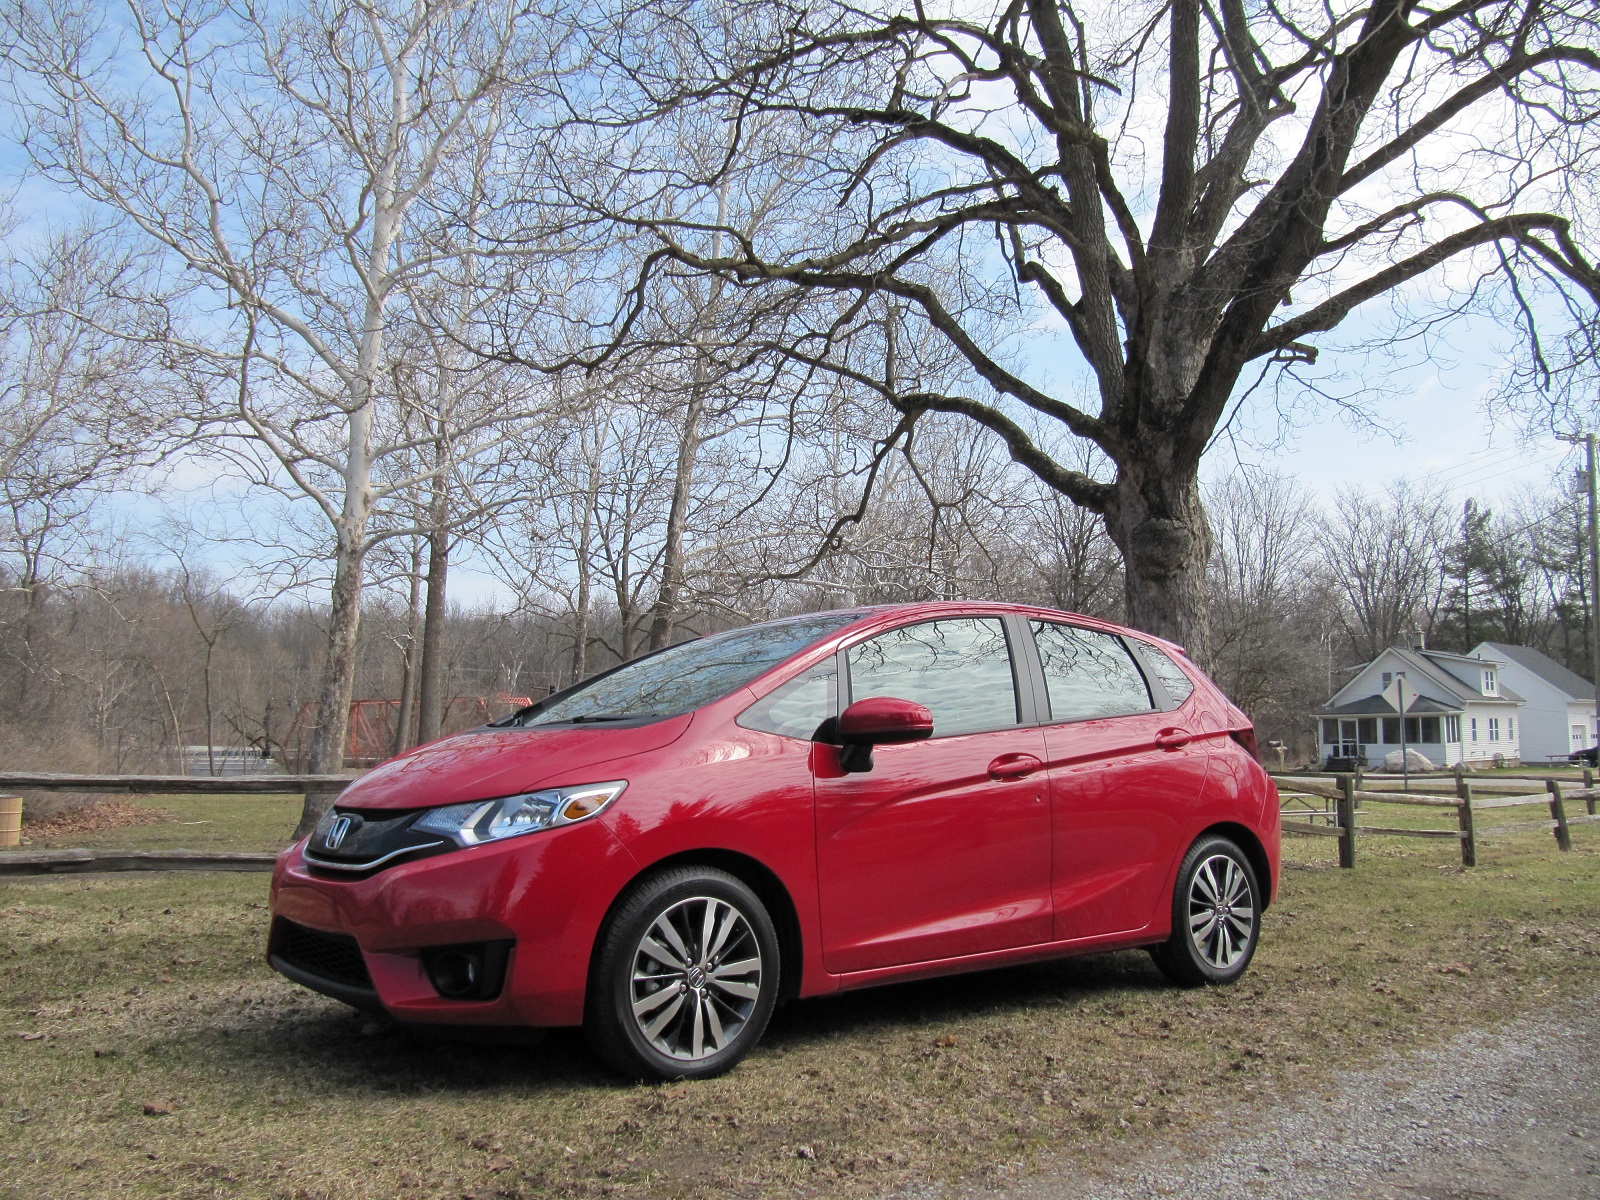 2015 Honda Fit: Quick Gas Mileage Drive Of All-New Hatchback